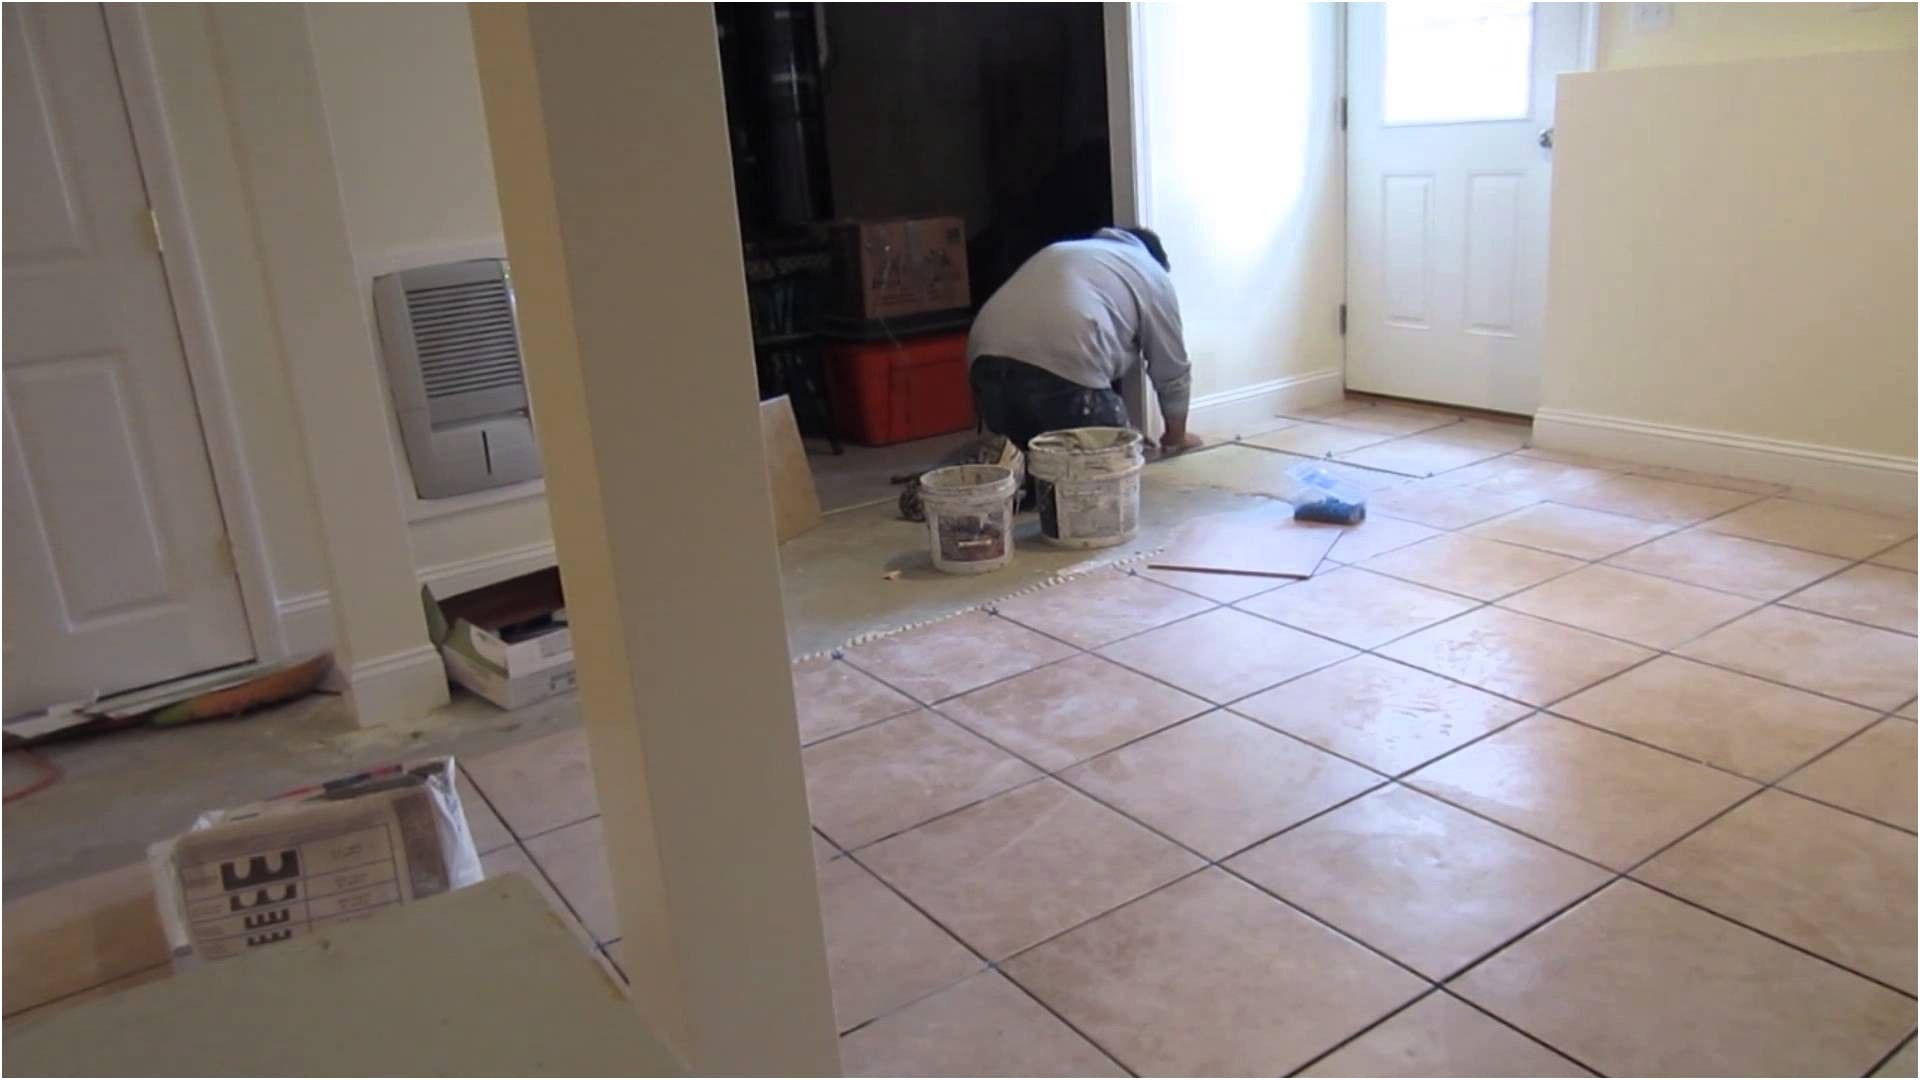 Time lapse of a 16 x16 ceramic tile installation on a basement from time lapse of a 16 ceramic tile installation on a basement from ceramic tile on concrete basement floor dailygadgetfo Choice Image